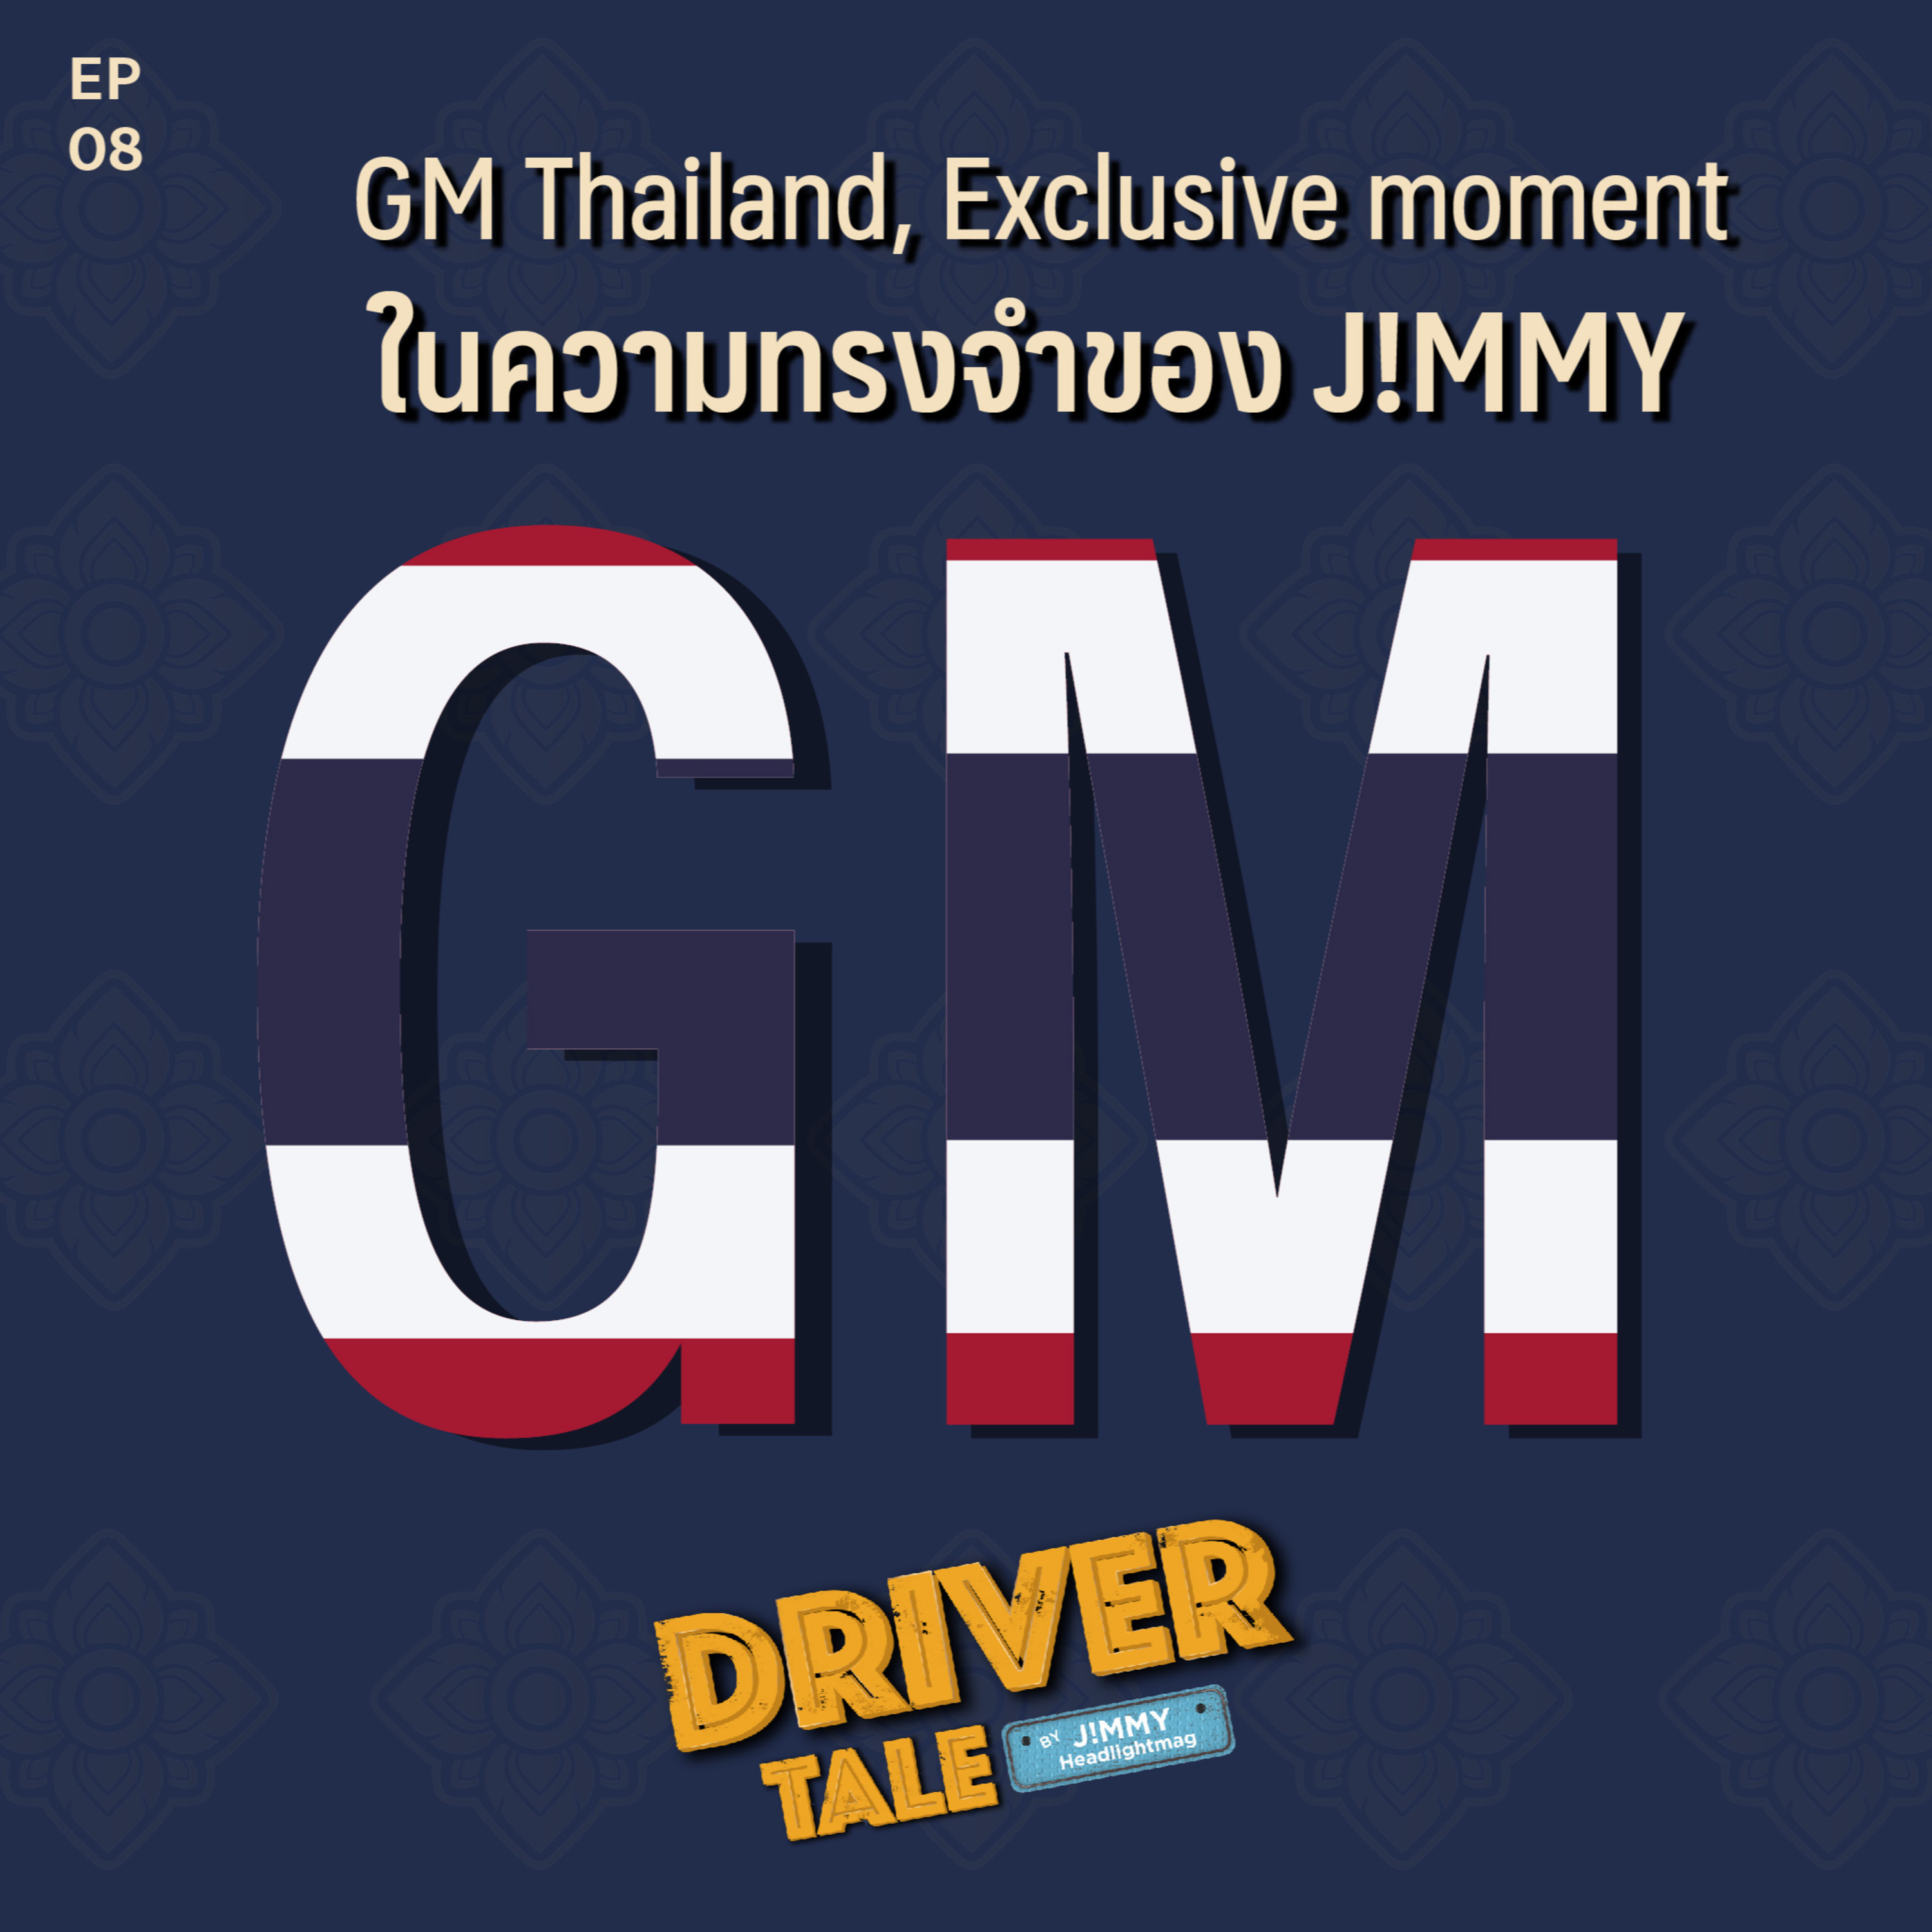 Driver Tale by JiMMY Headlightmag Ep8 : GM Thailand, Exclusive moment ในความทรงจำของ J!MMY